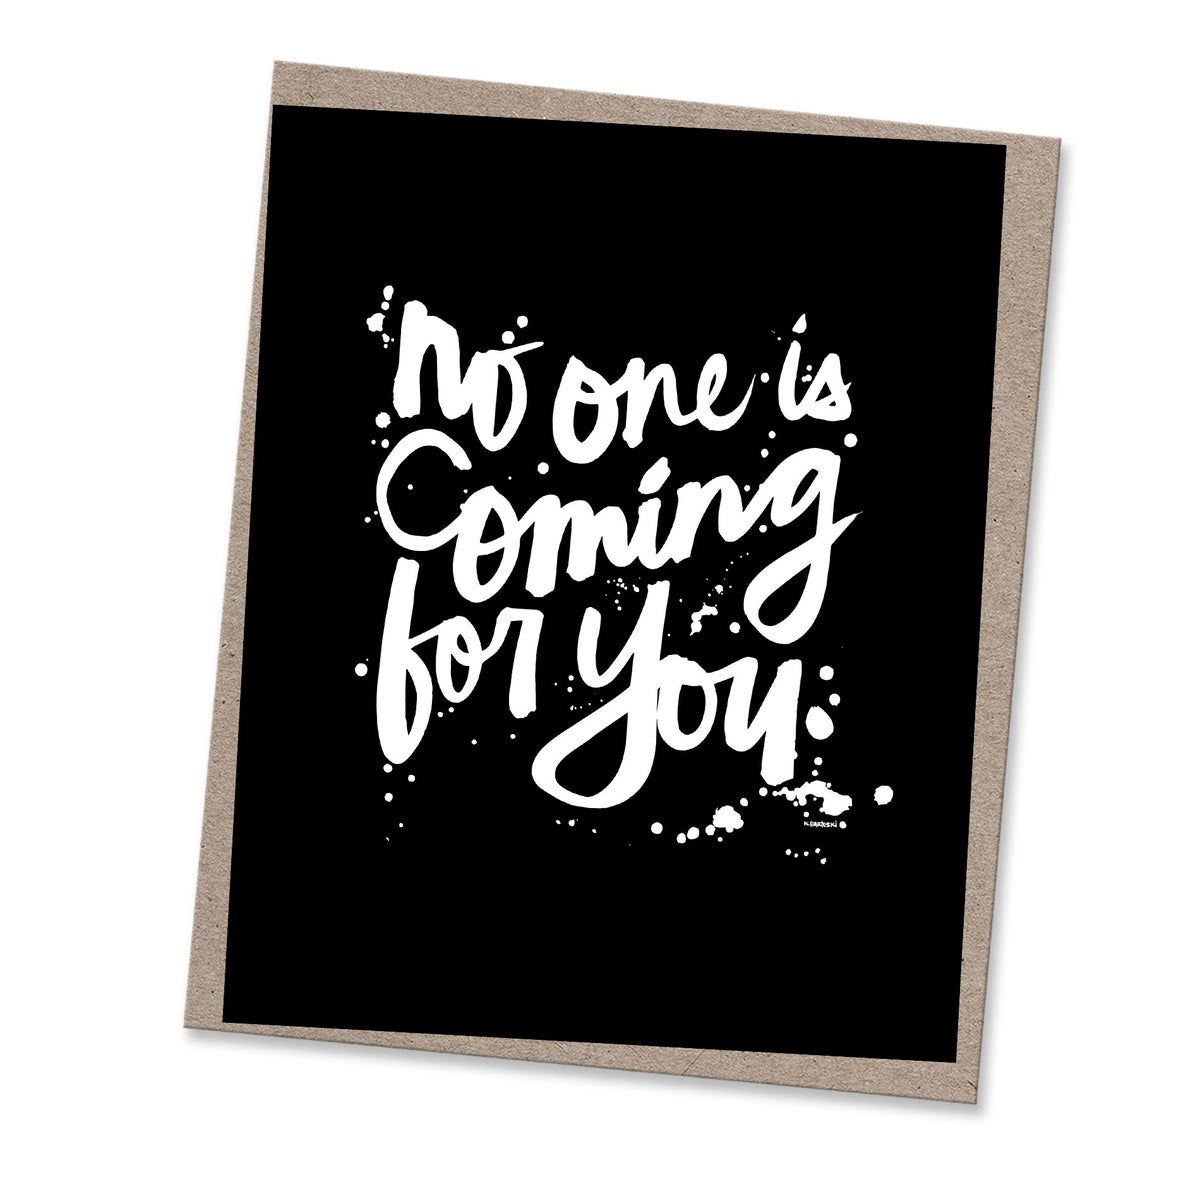 Image of NO ONE IS COMING #kbscript print